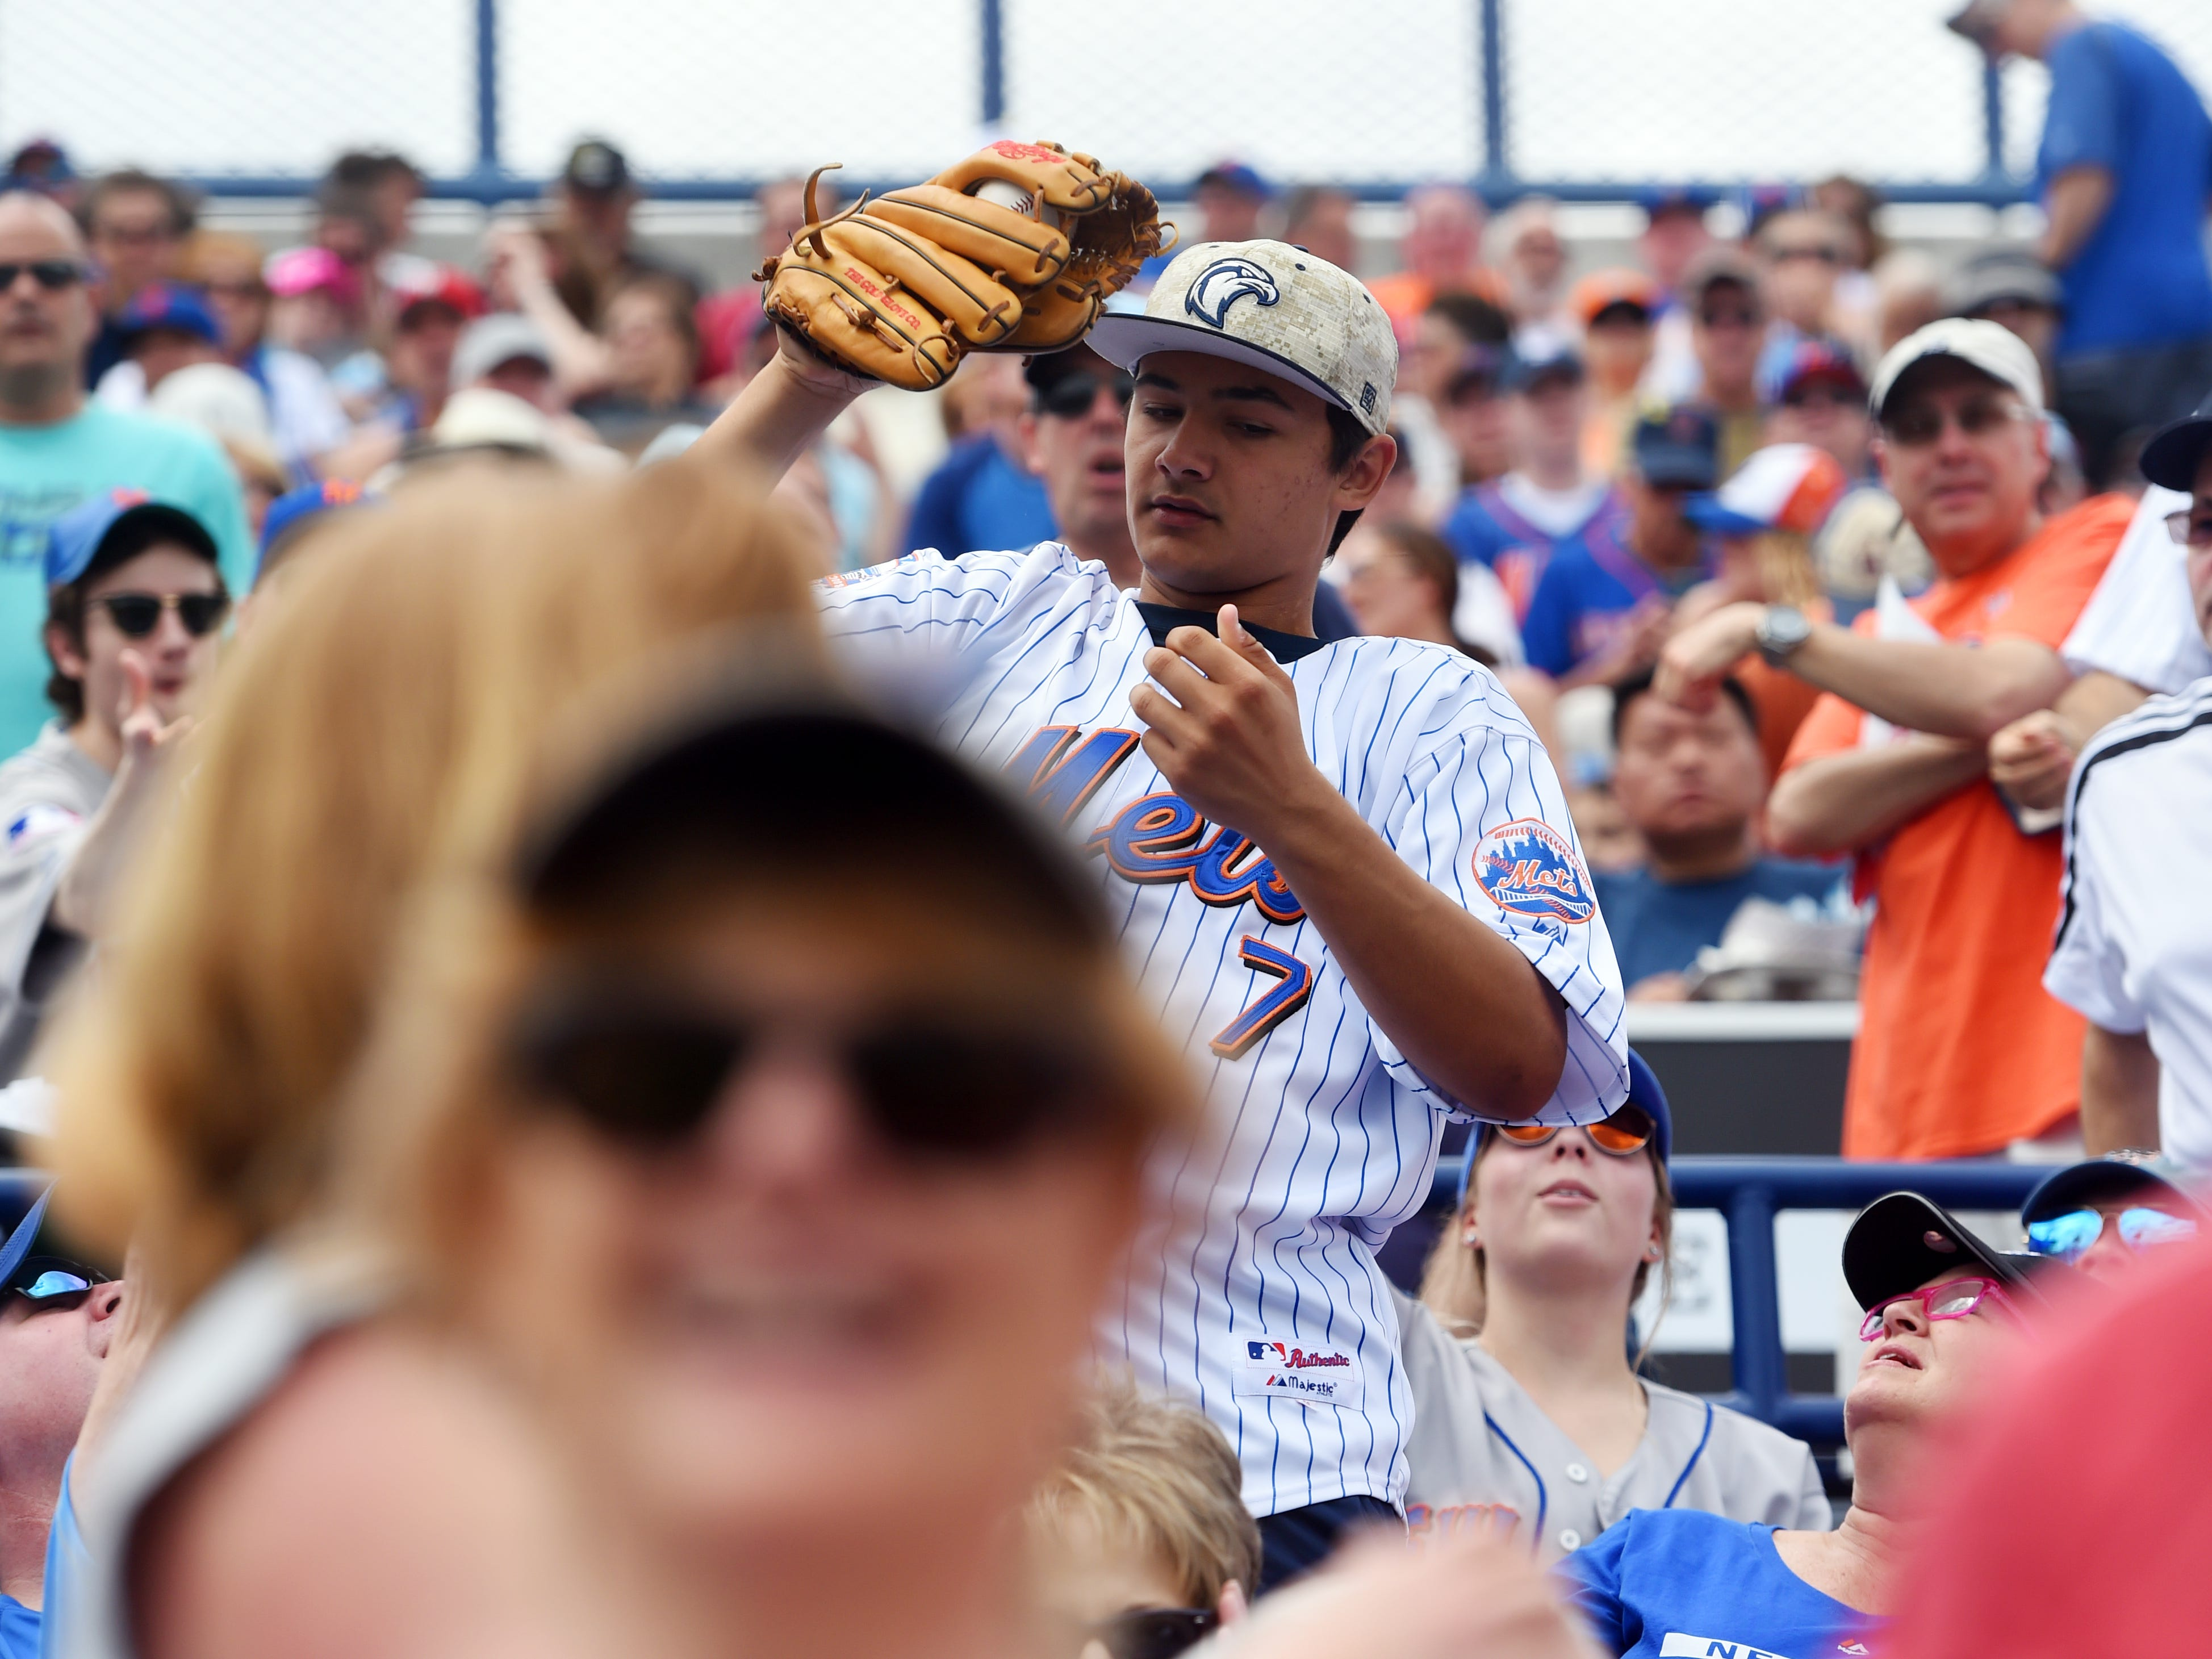 Daniel Garvin, 16, of Winter Park, hauls in a baseball thrown into the stands by New York Mets outfielder Jeff McNeil before the Mets' spring training game against the Miami Marlins on Thursday, March 21, 2019 at First Data Field in Port St. Lucie. Fans only have two more chances to watch the Mets at First Data Field during spring training, Friday at 1:10 p.m. and Sunday at 12:10 p.m.